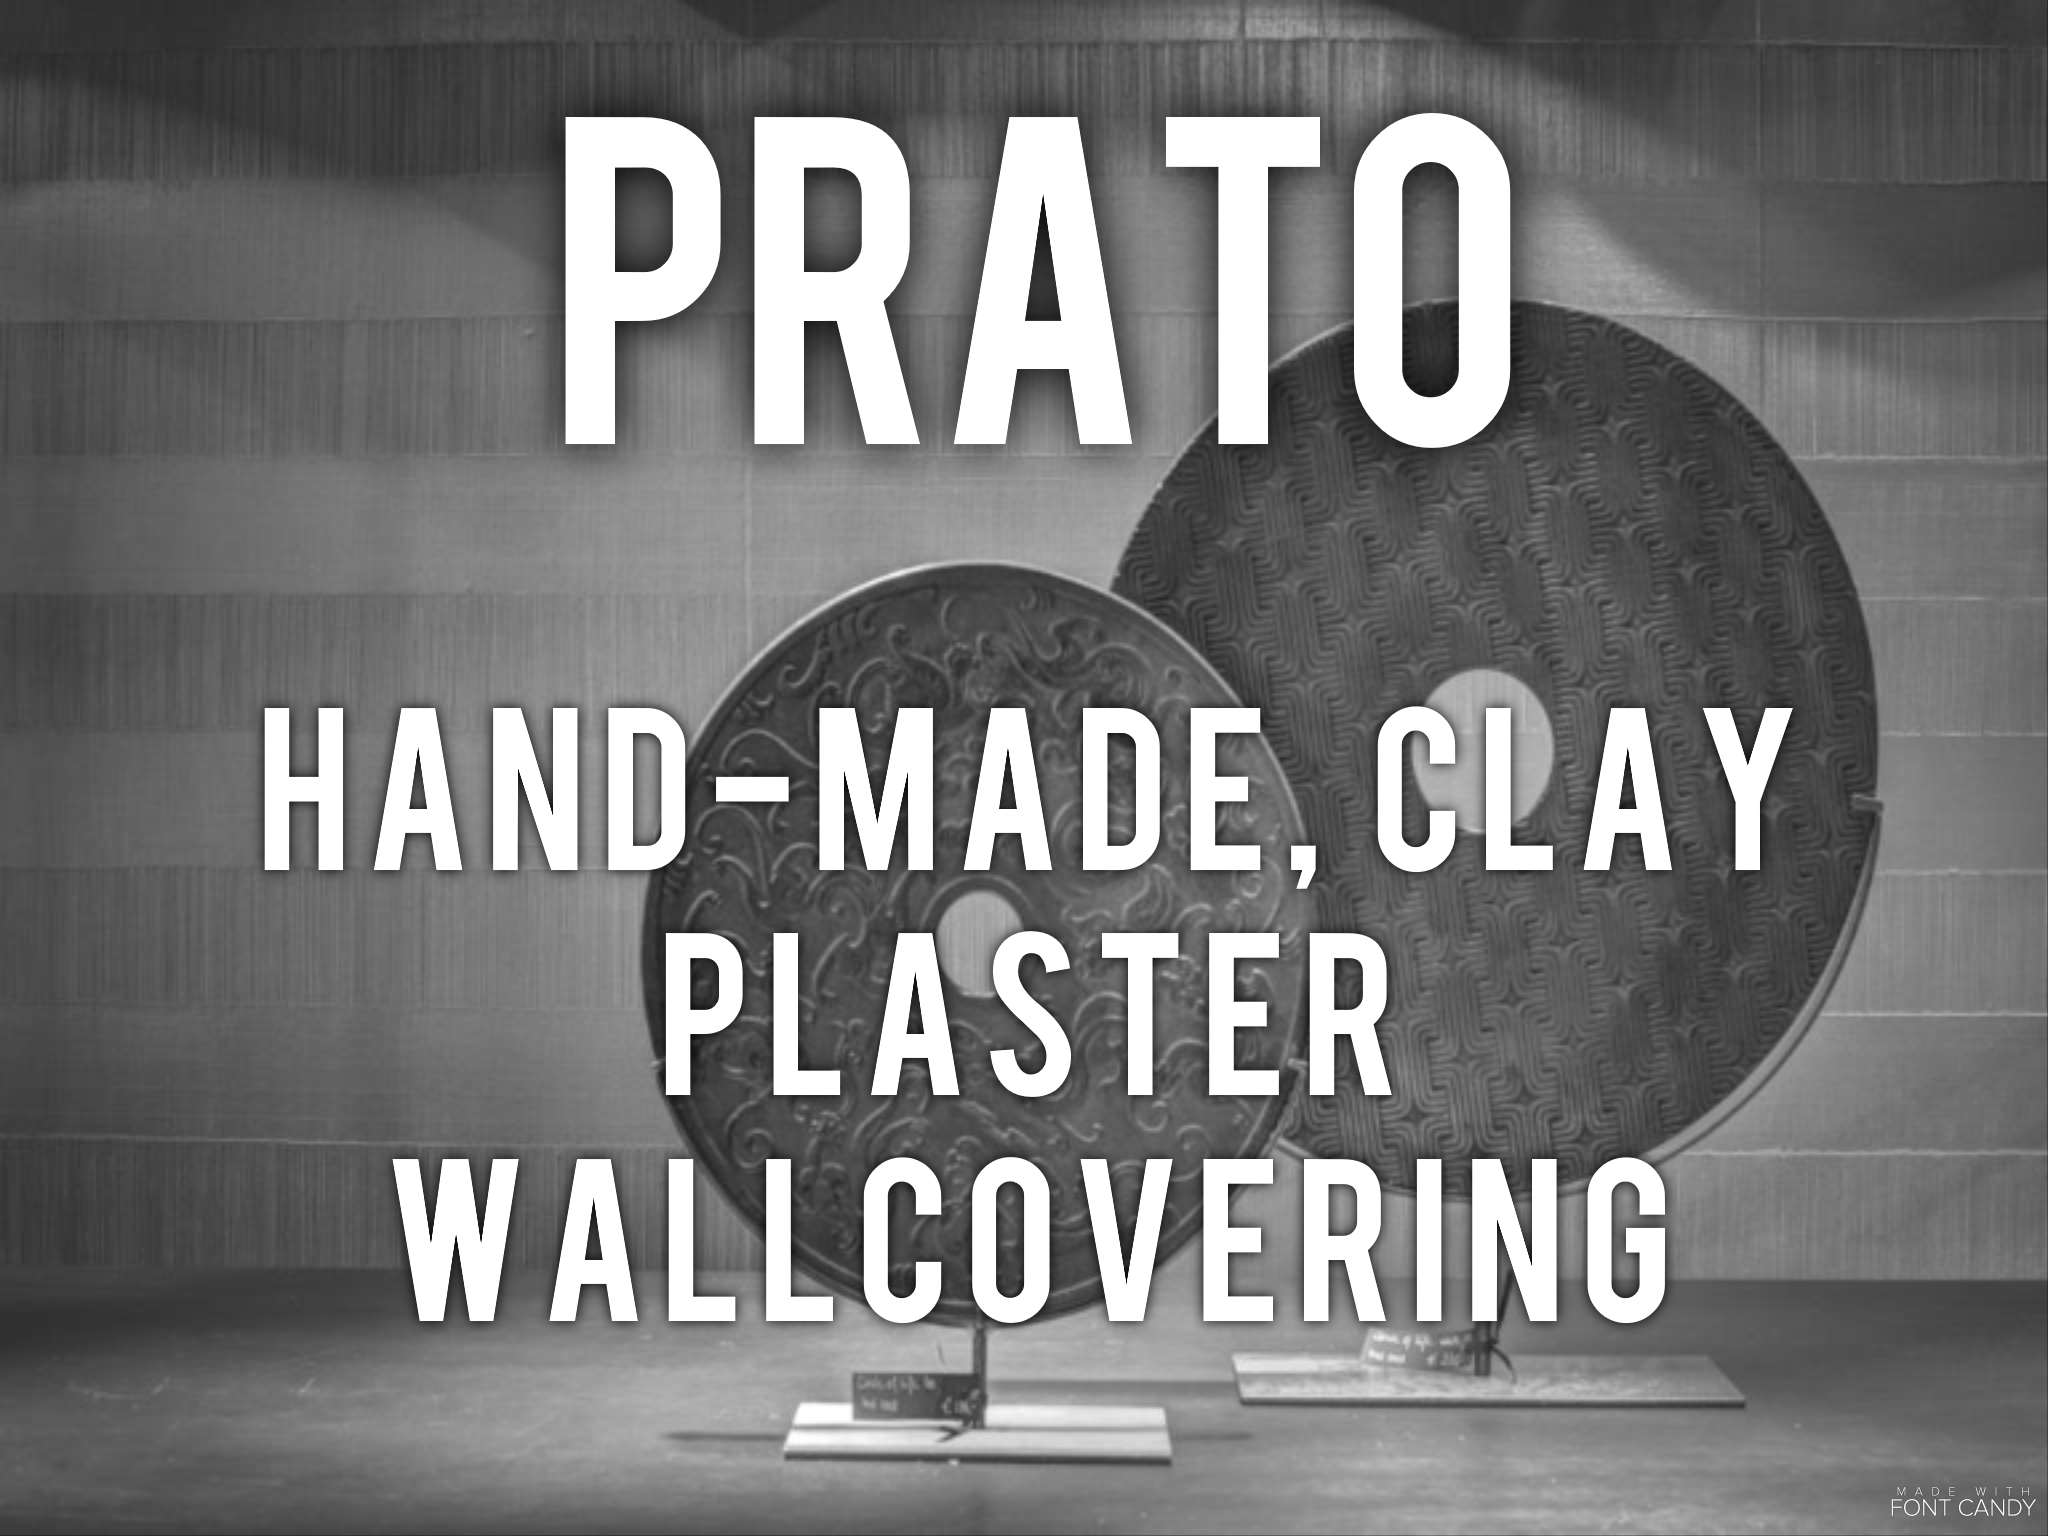 Prato - hand-made clay plaster wallcovering